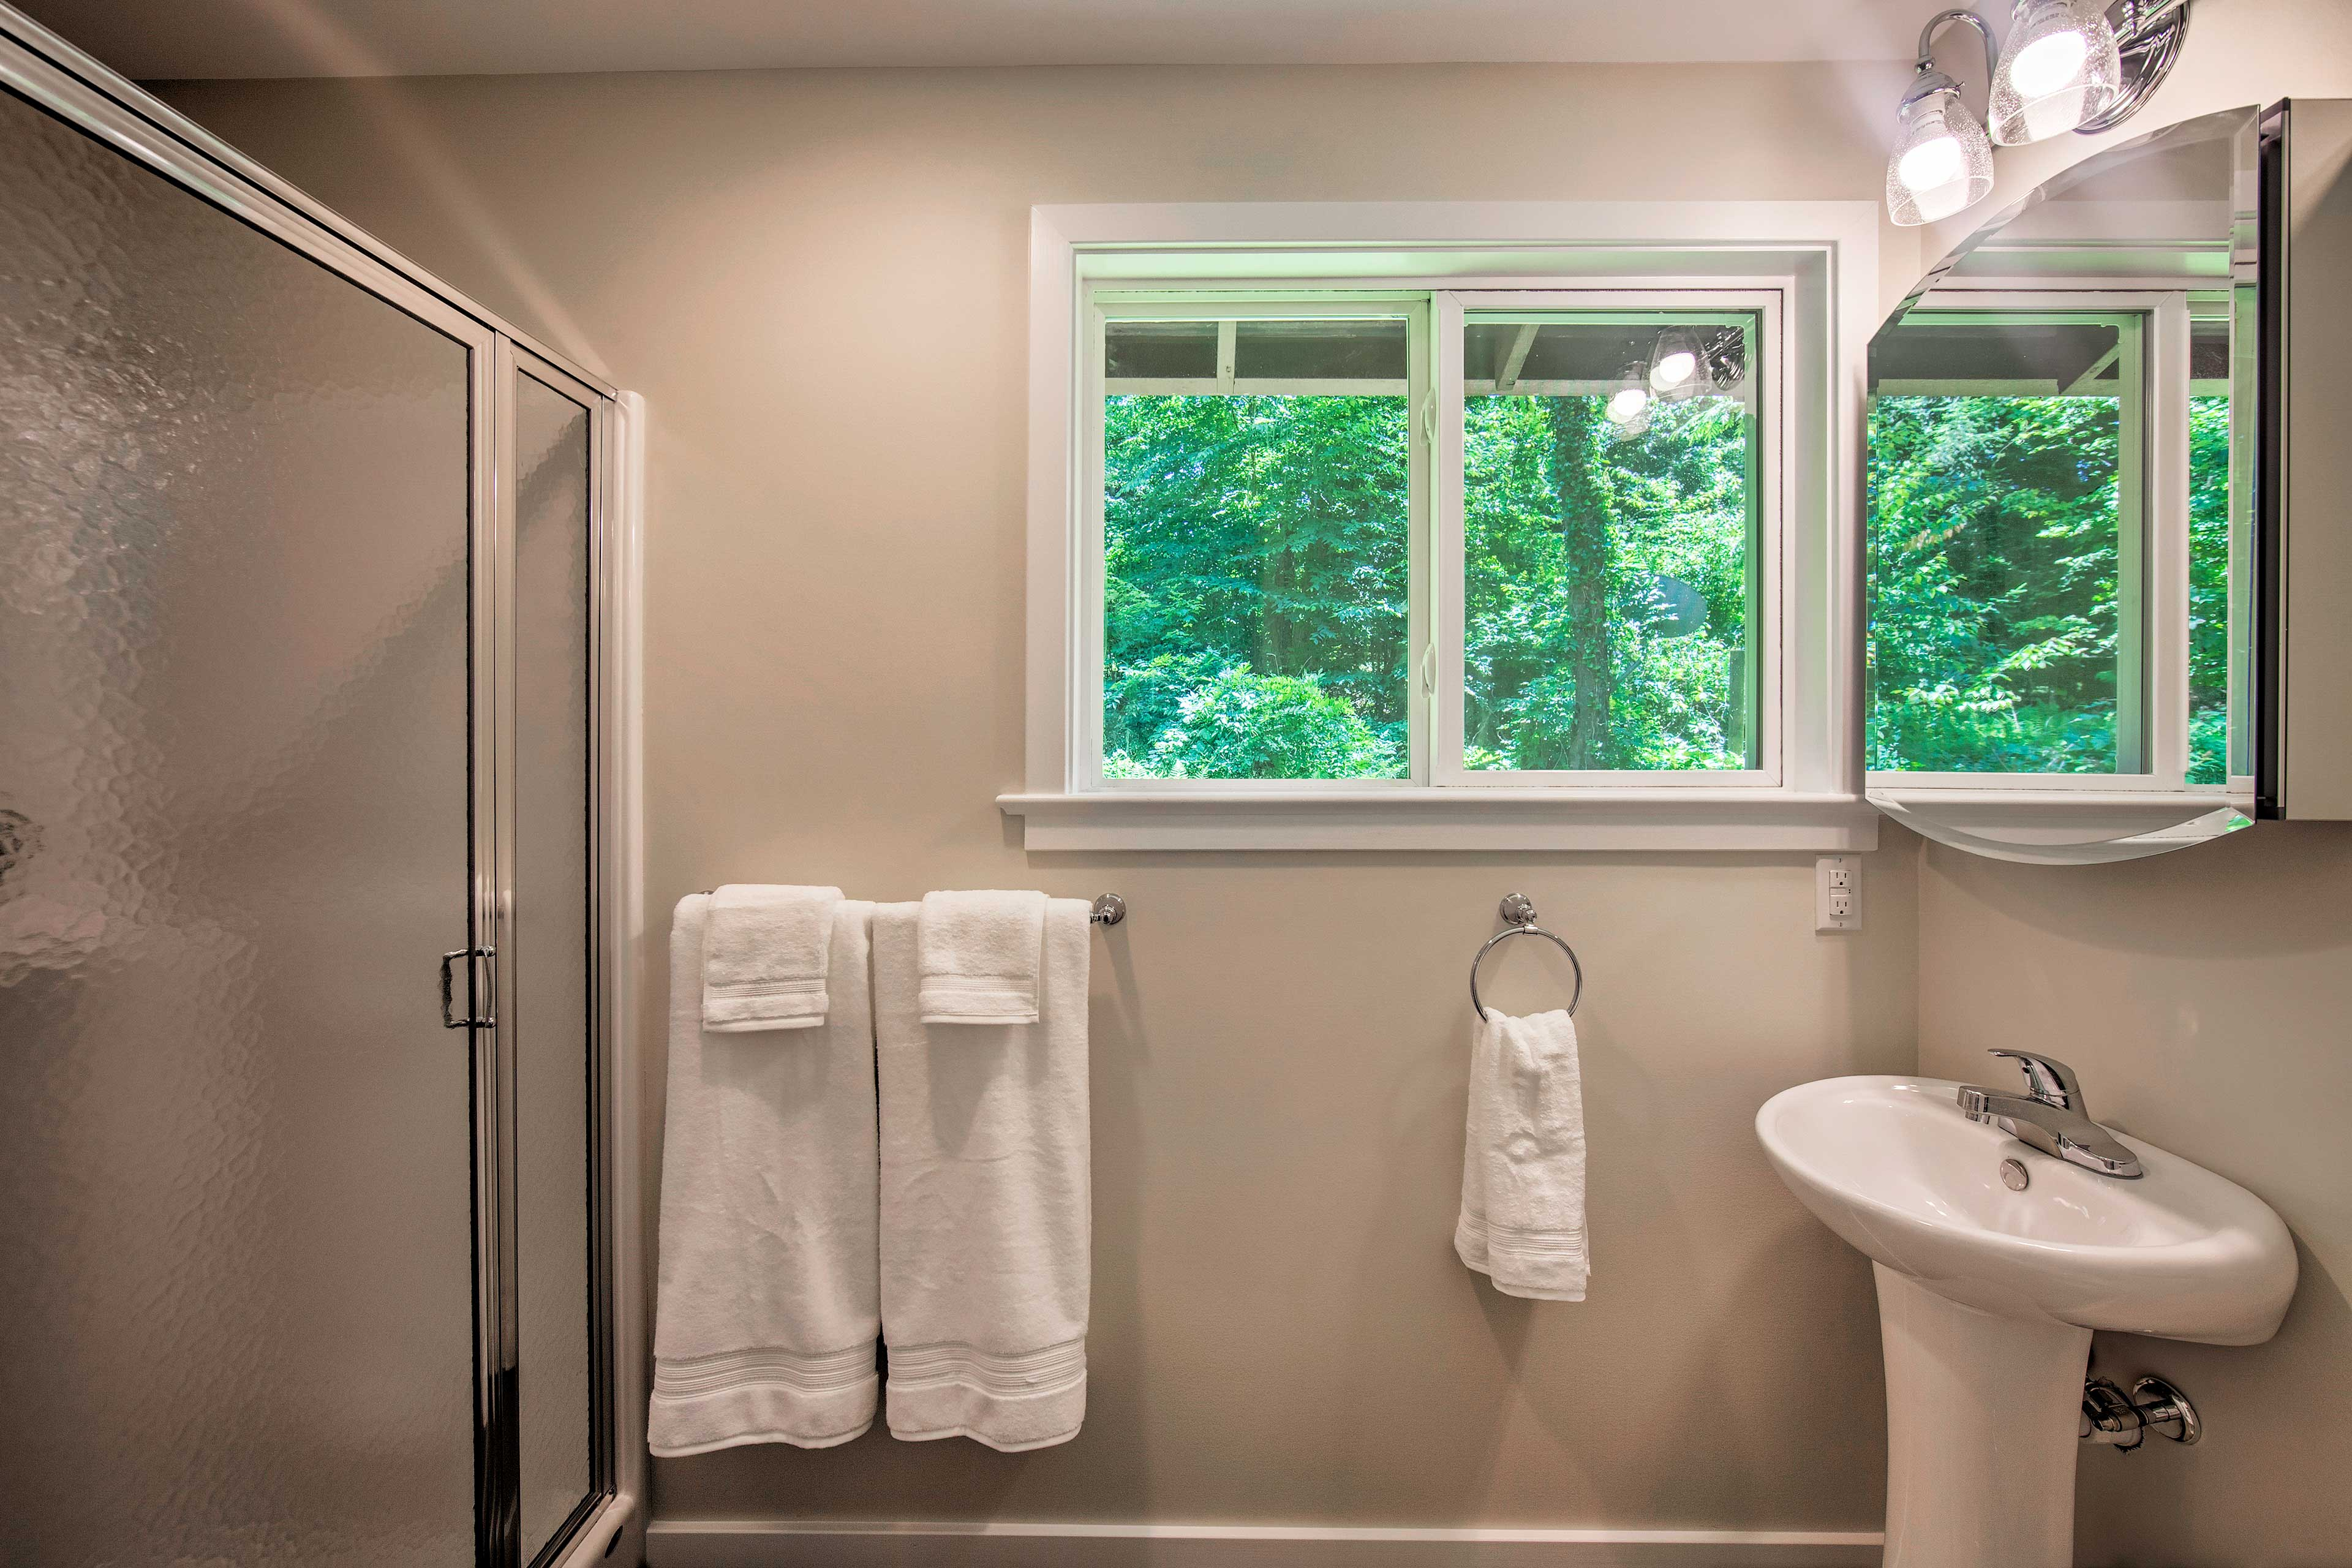 Rinse off in this shower/tub combo.